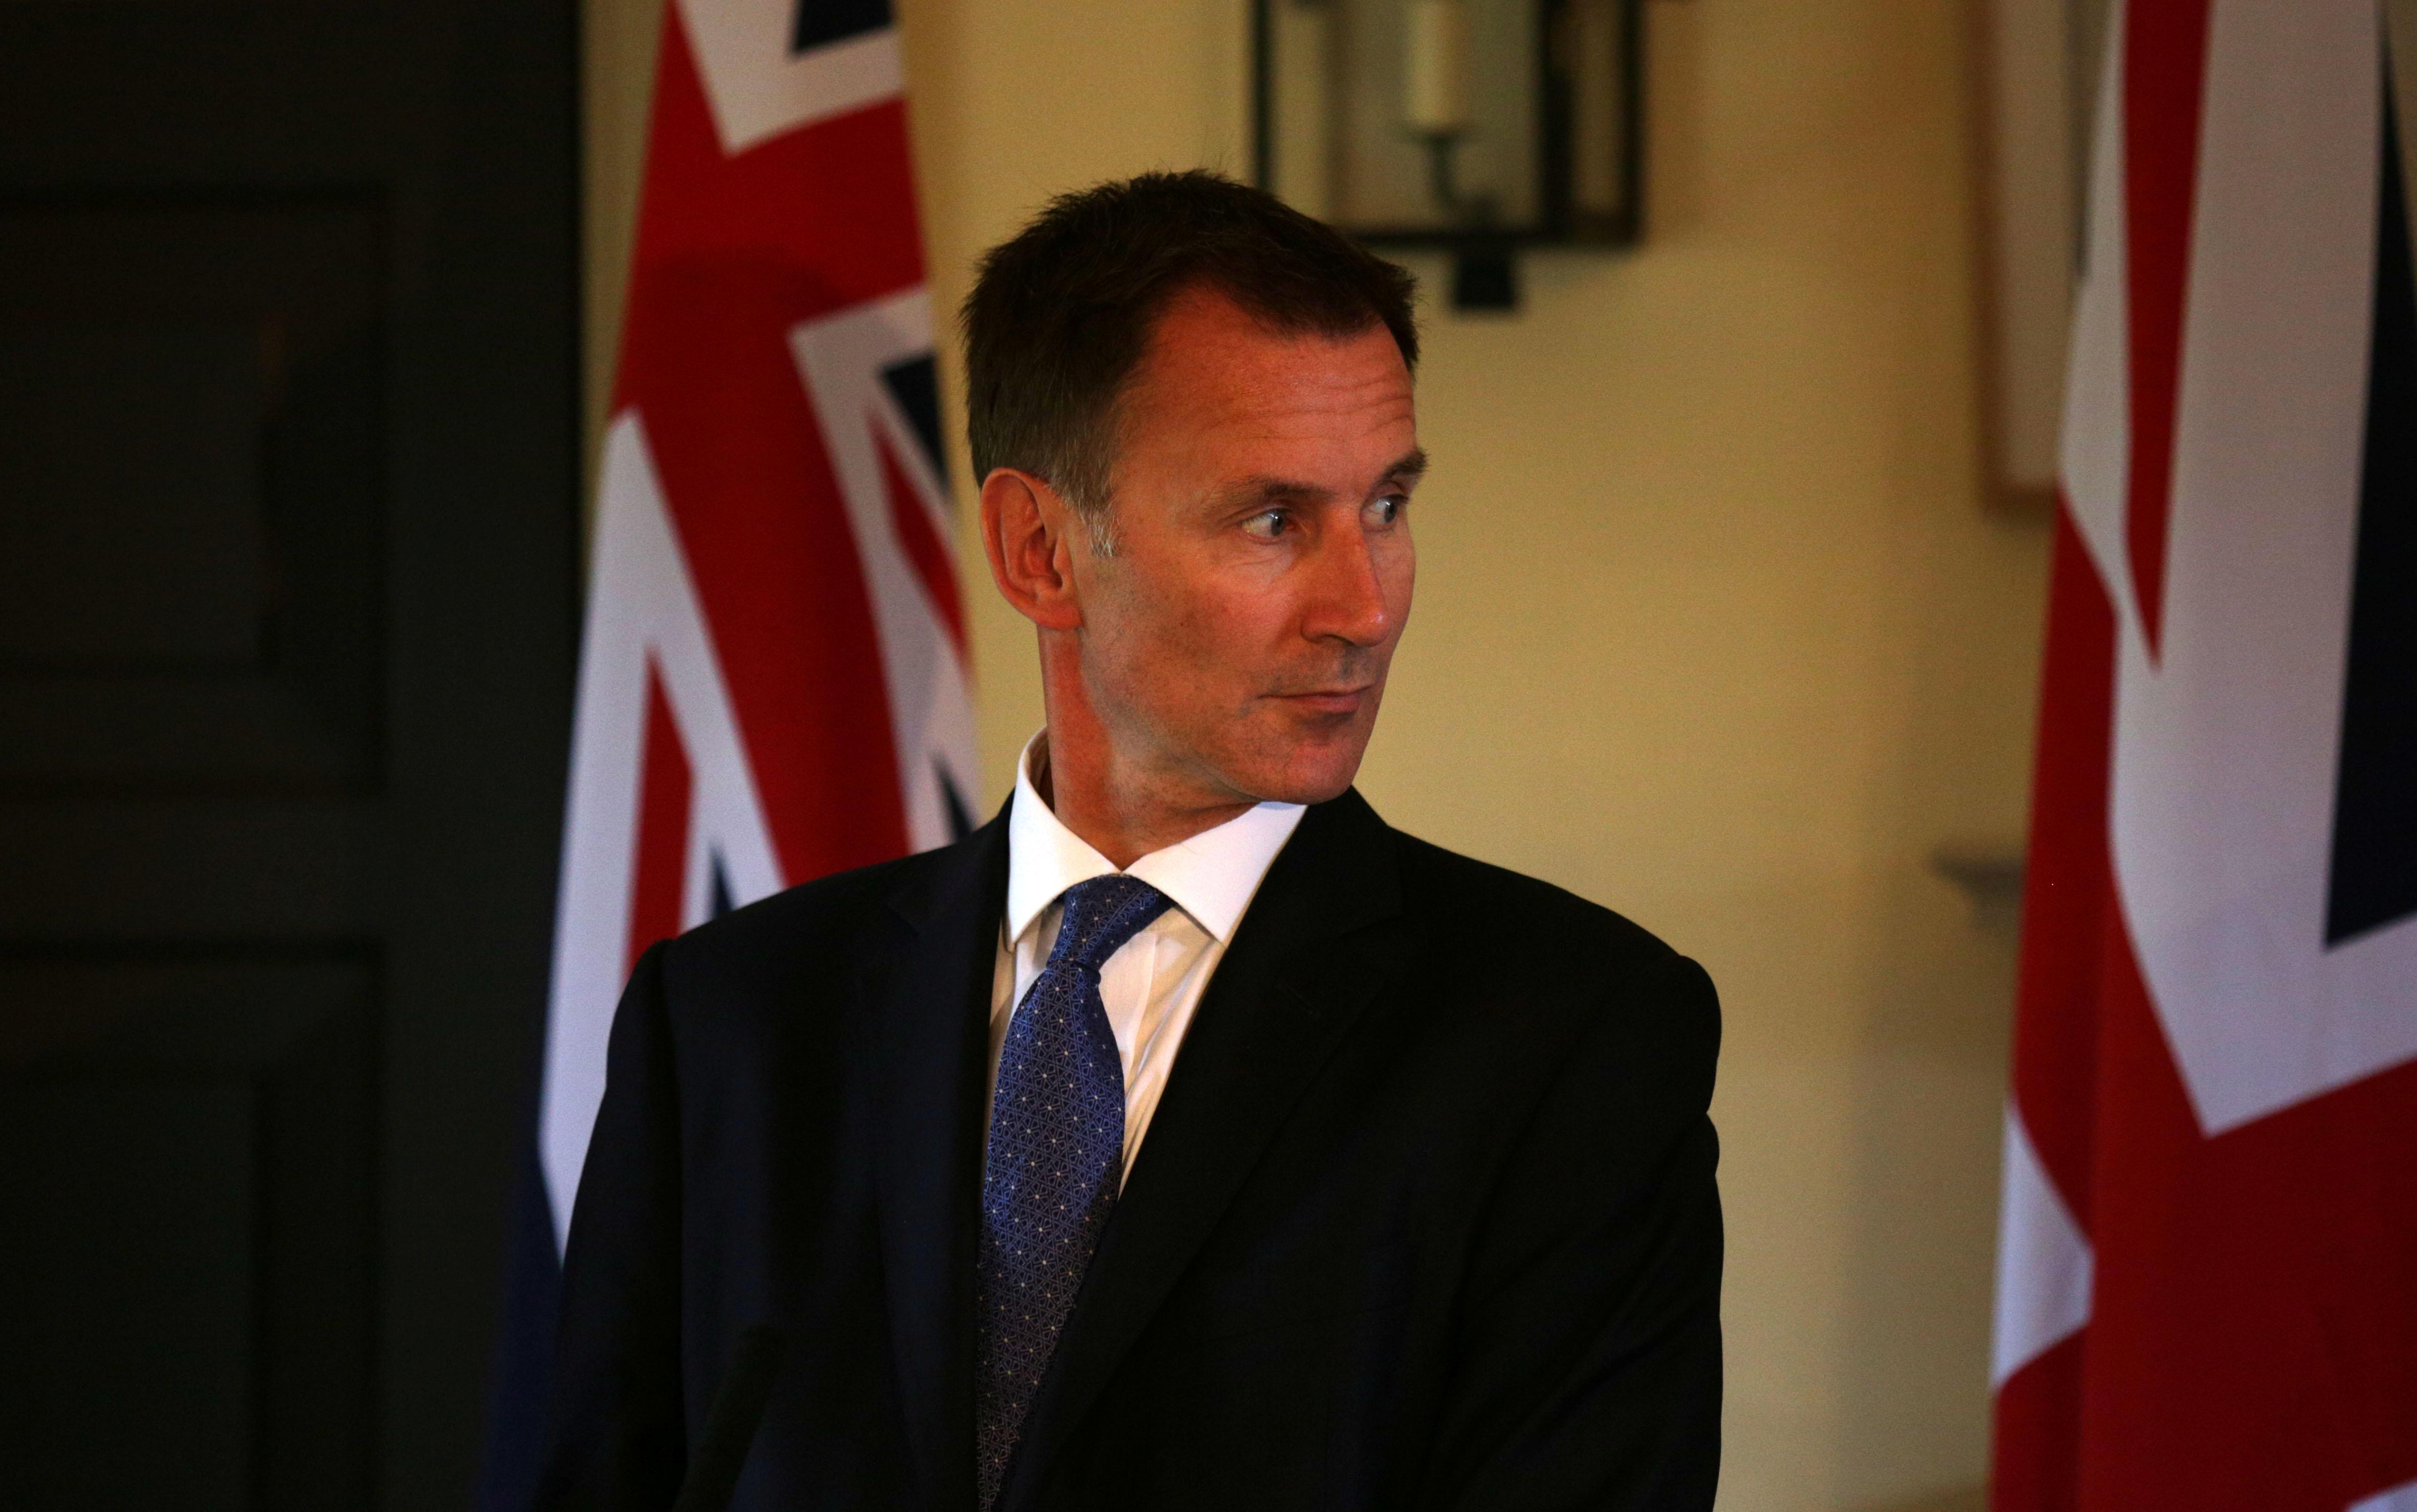 Britain's Foreign Secretary Jeremy Hunt gives a press conference at the Royal Botanic Garden in Edinburgh, Scotland July 20, 2018. David Cheskin/Pool via Reuters